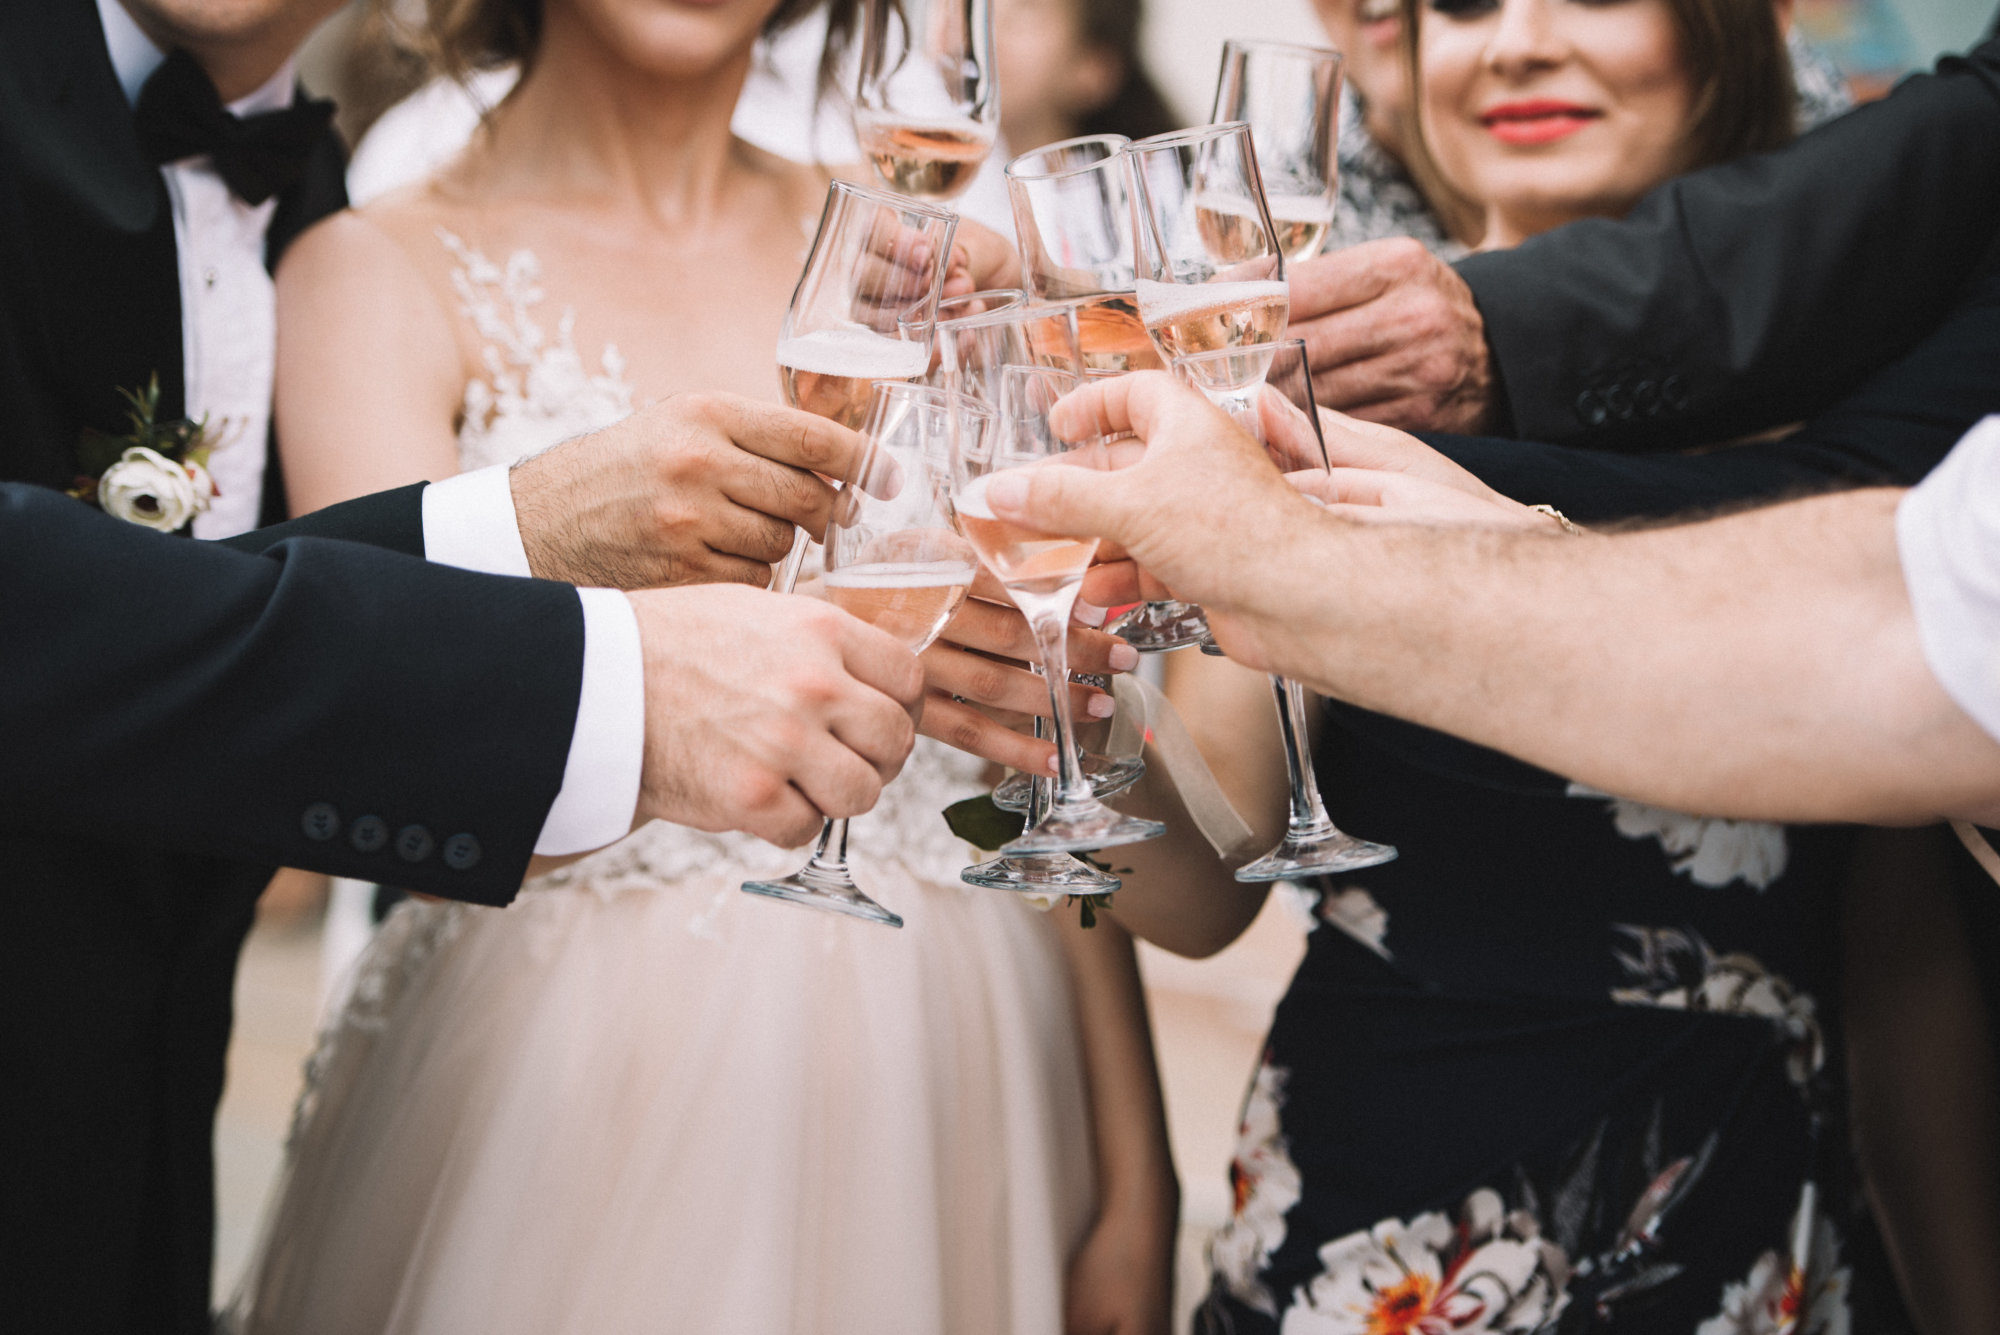 Wine of the Week: Best wines for a wedding reception